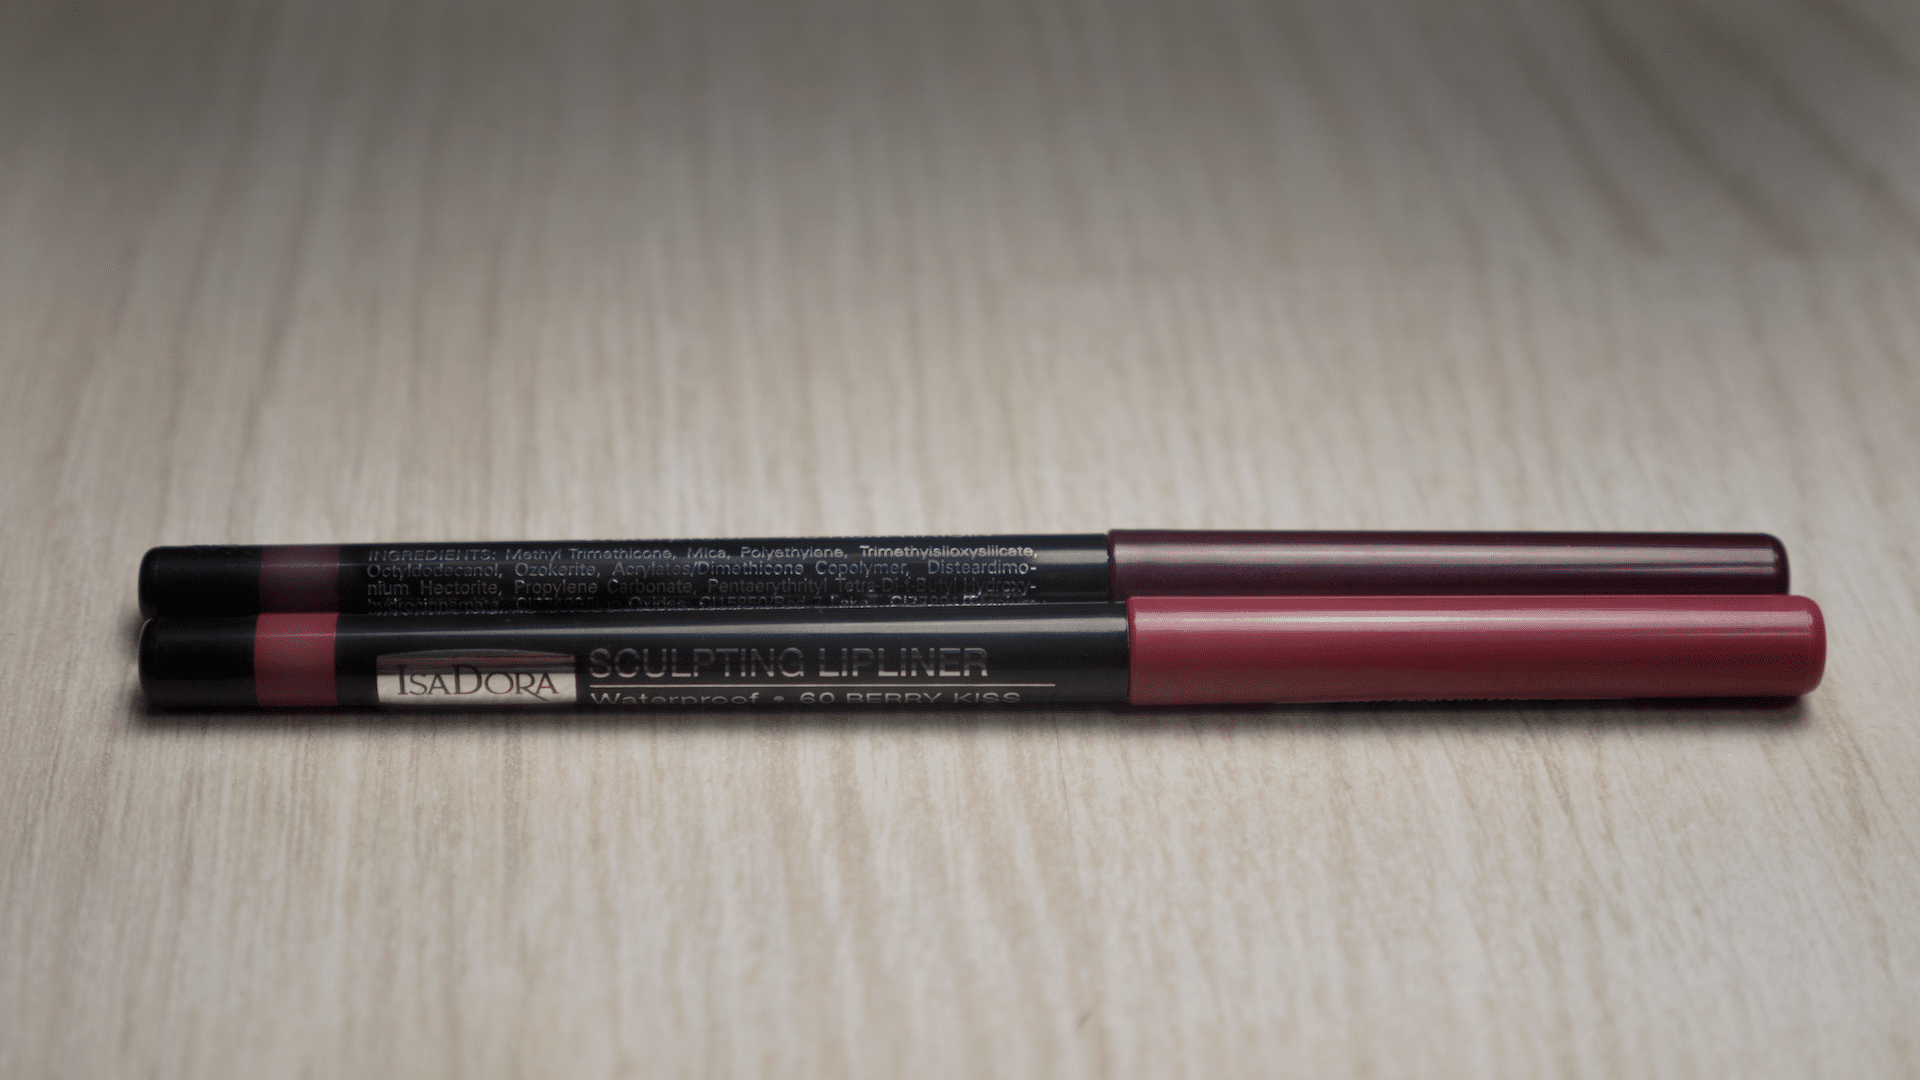 Sculpting Lipliner: 60 Berry Kiss, 68 Rum Raisin